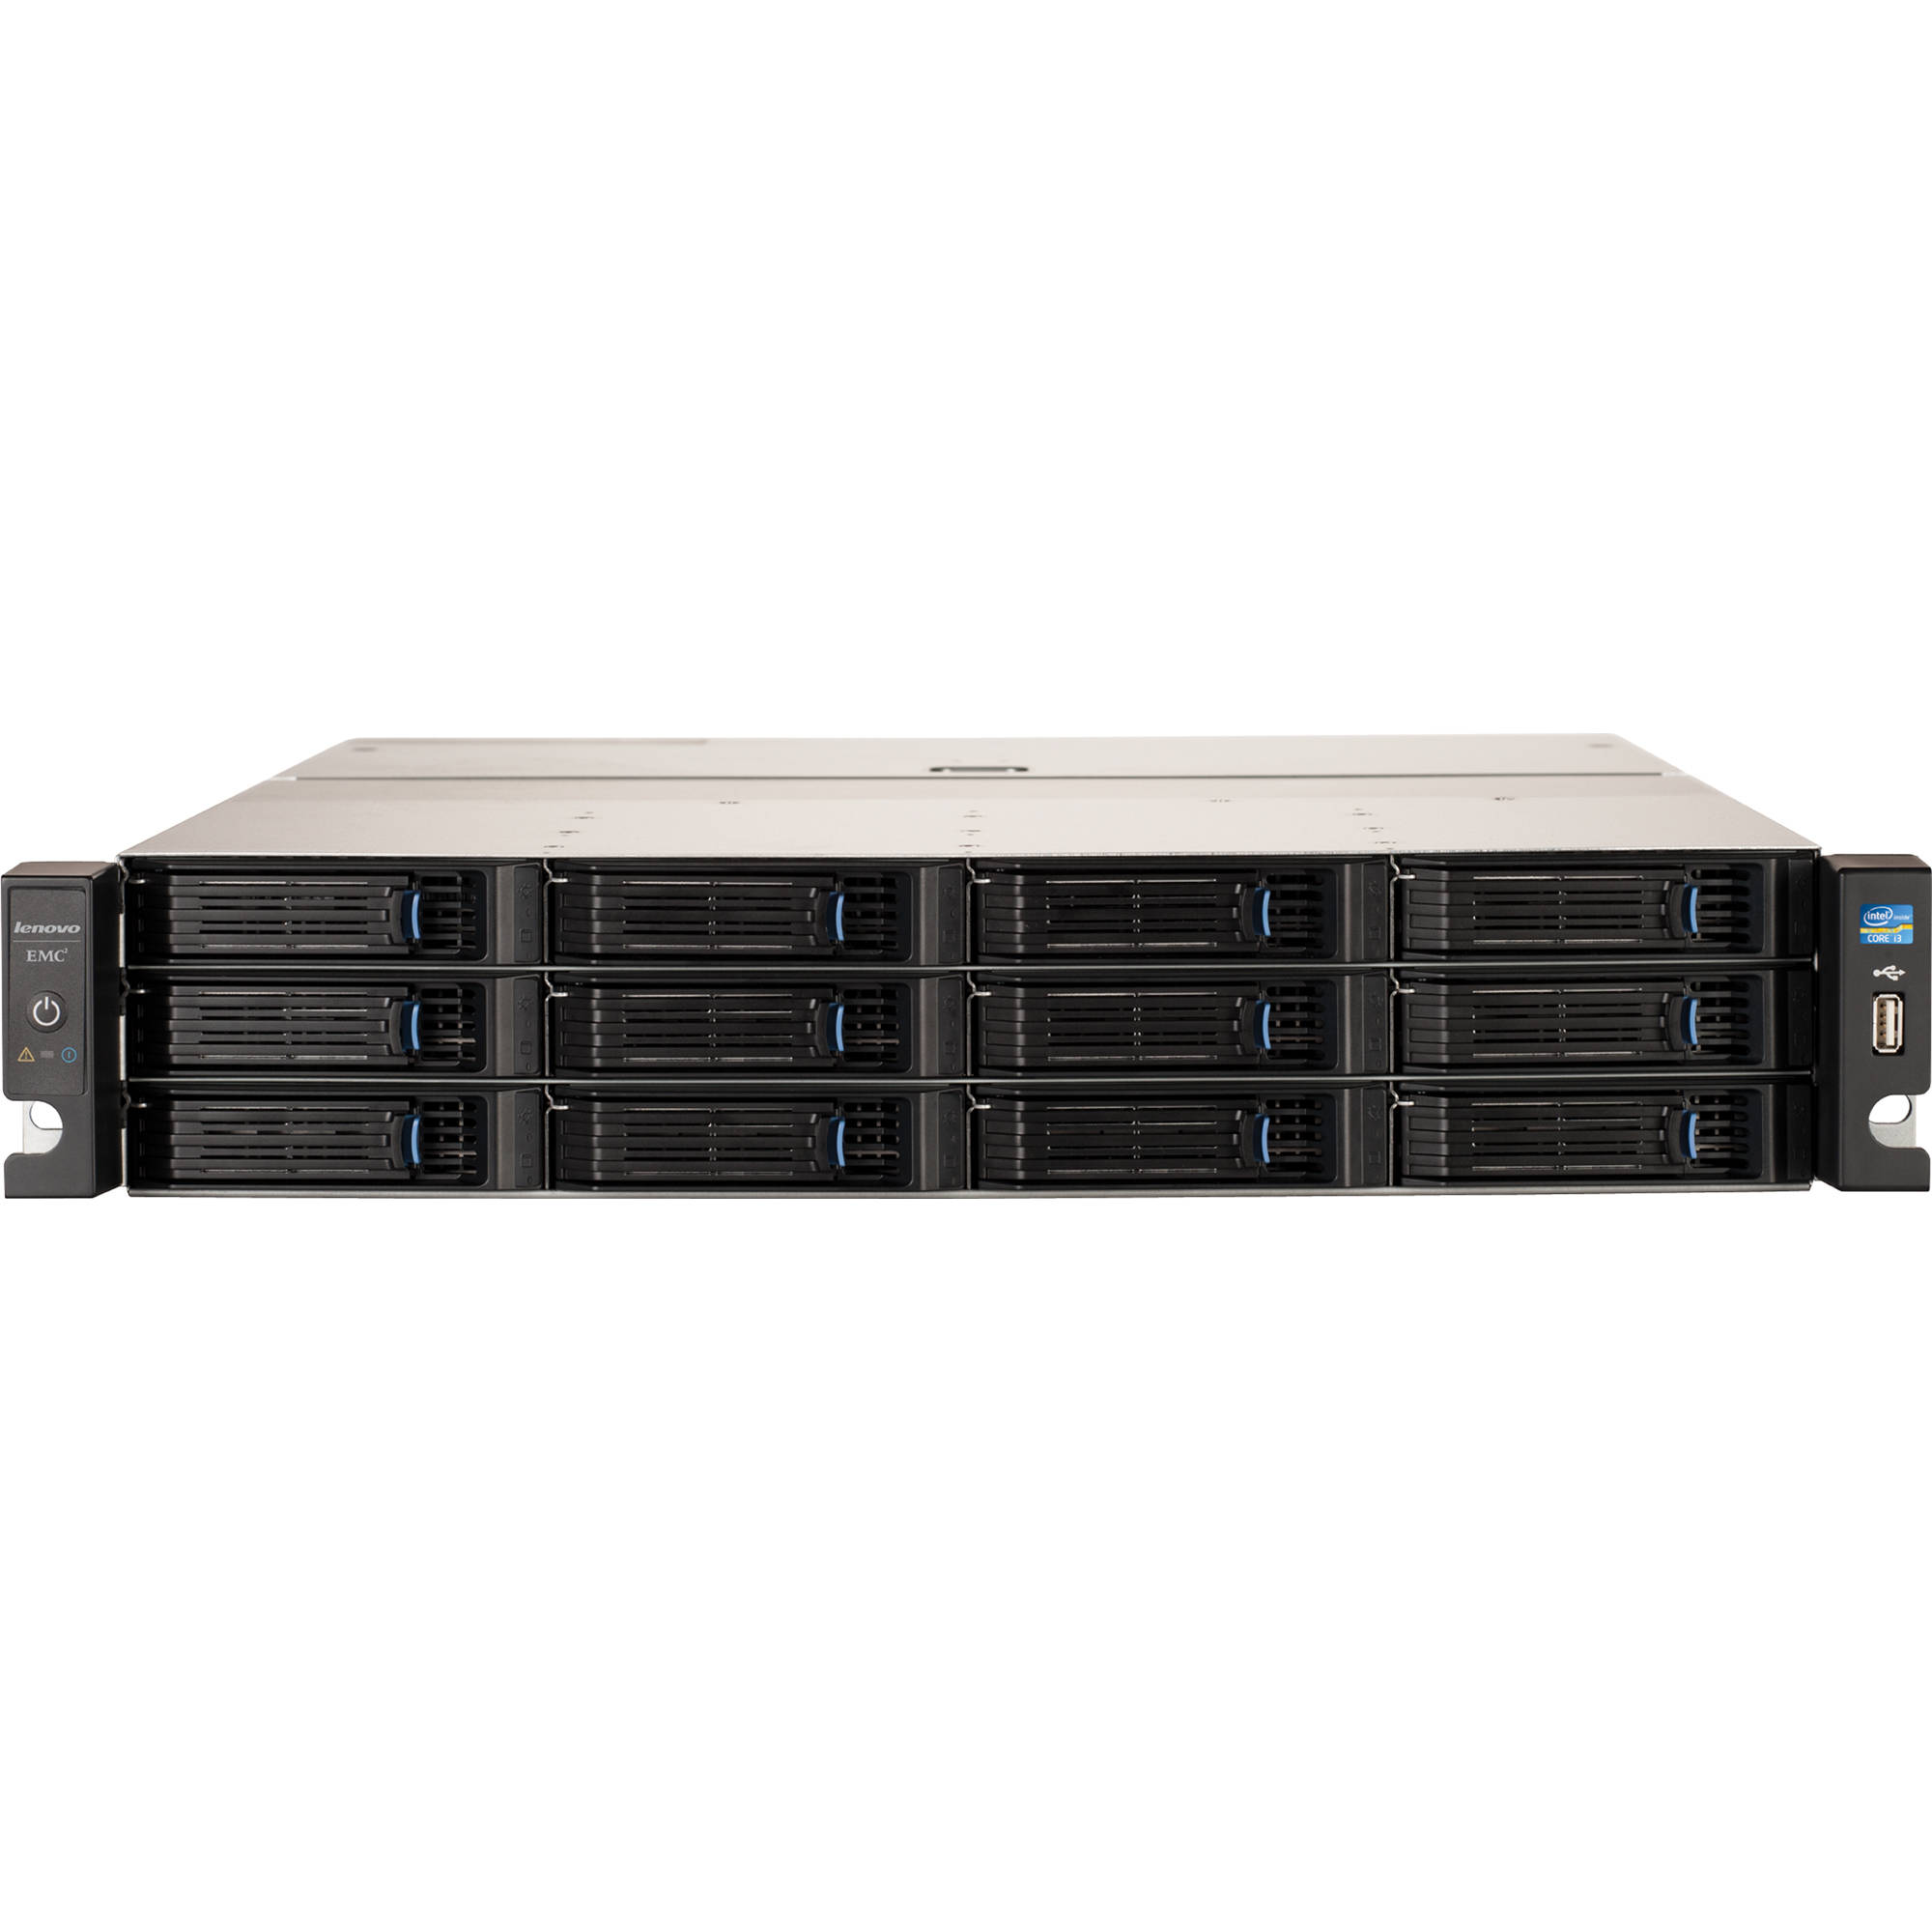 Lenovoemc px12 450r 12 bay network storage array 8tb for Storage bay